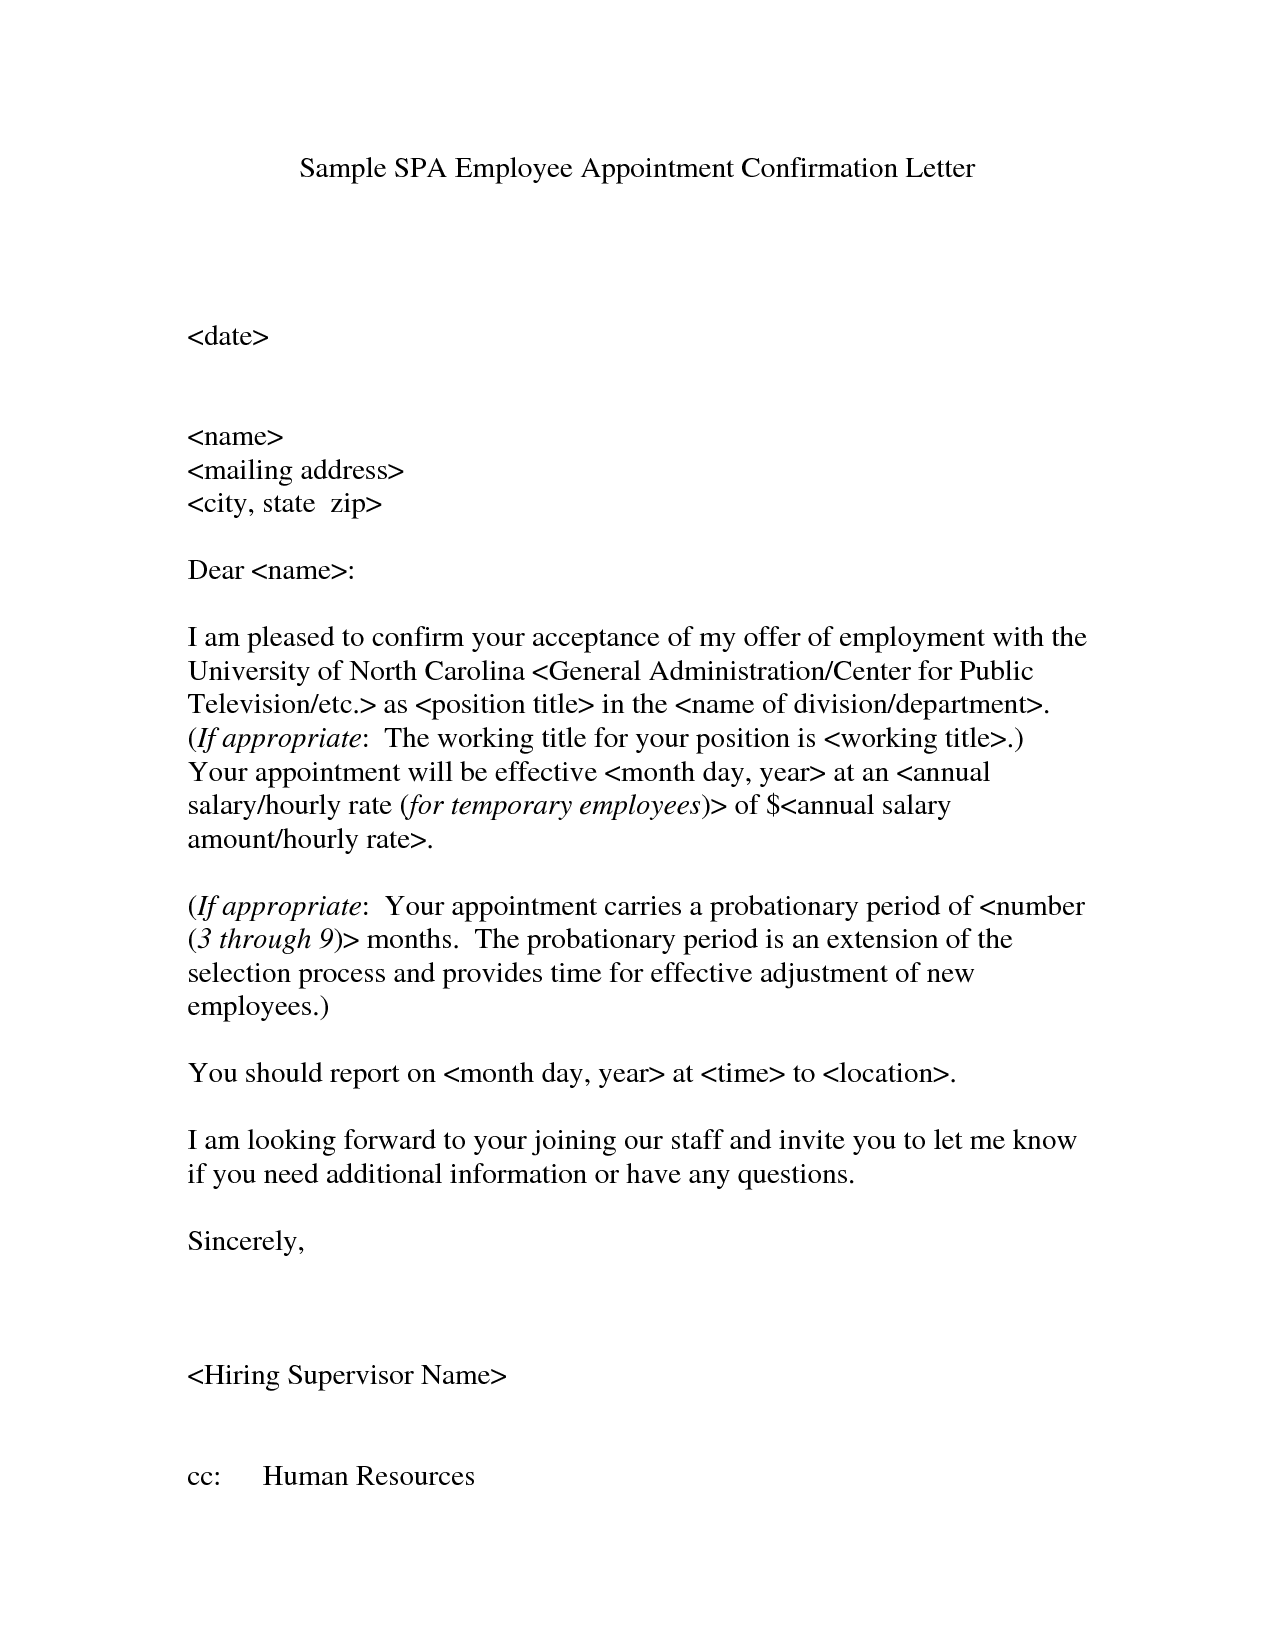 Letter of appointment format for employee juvecenitdelacabrera letter of appointment format for employee altavistaventures